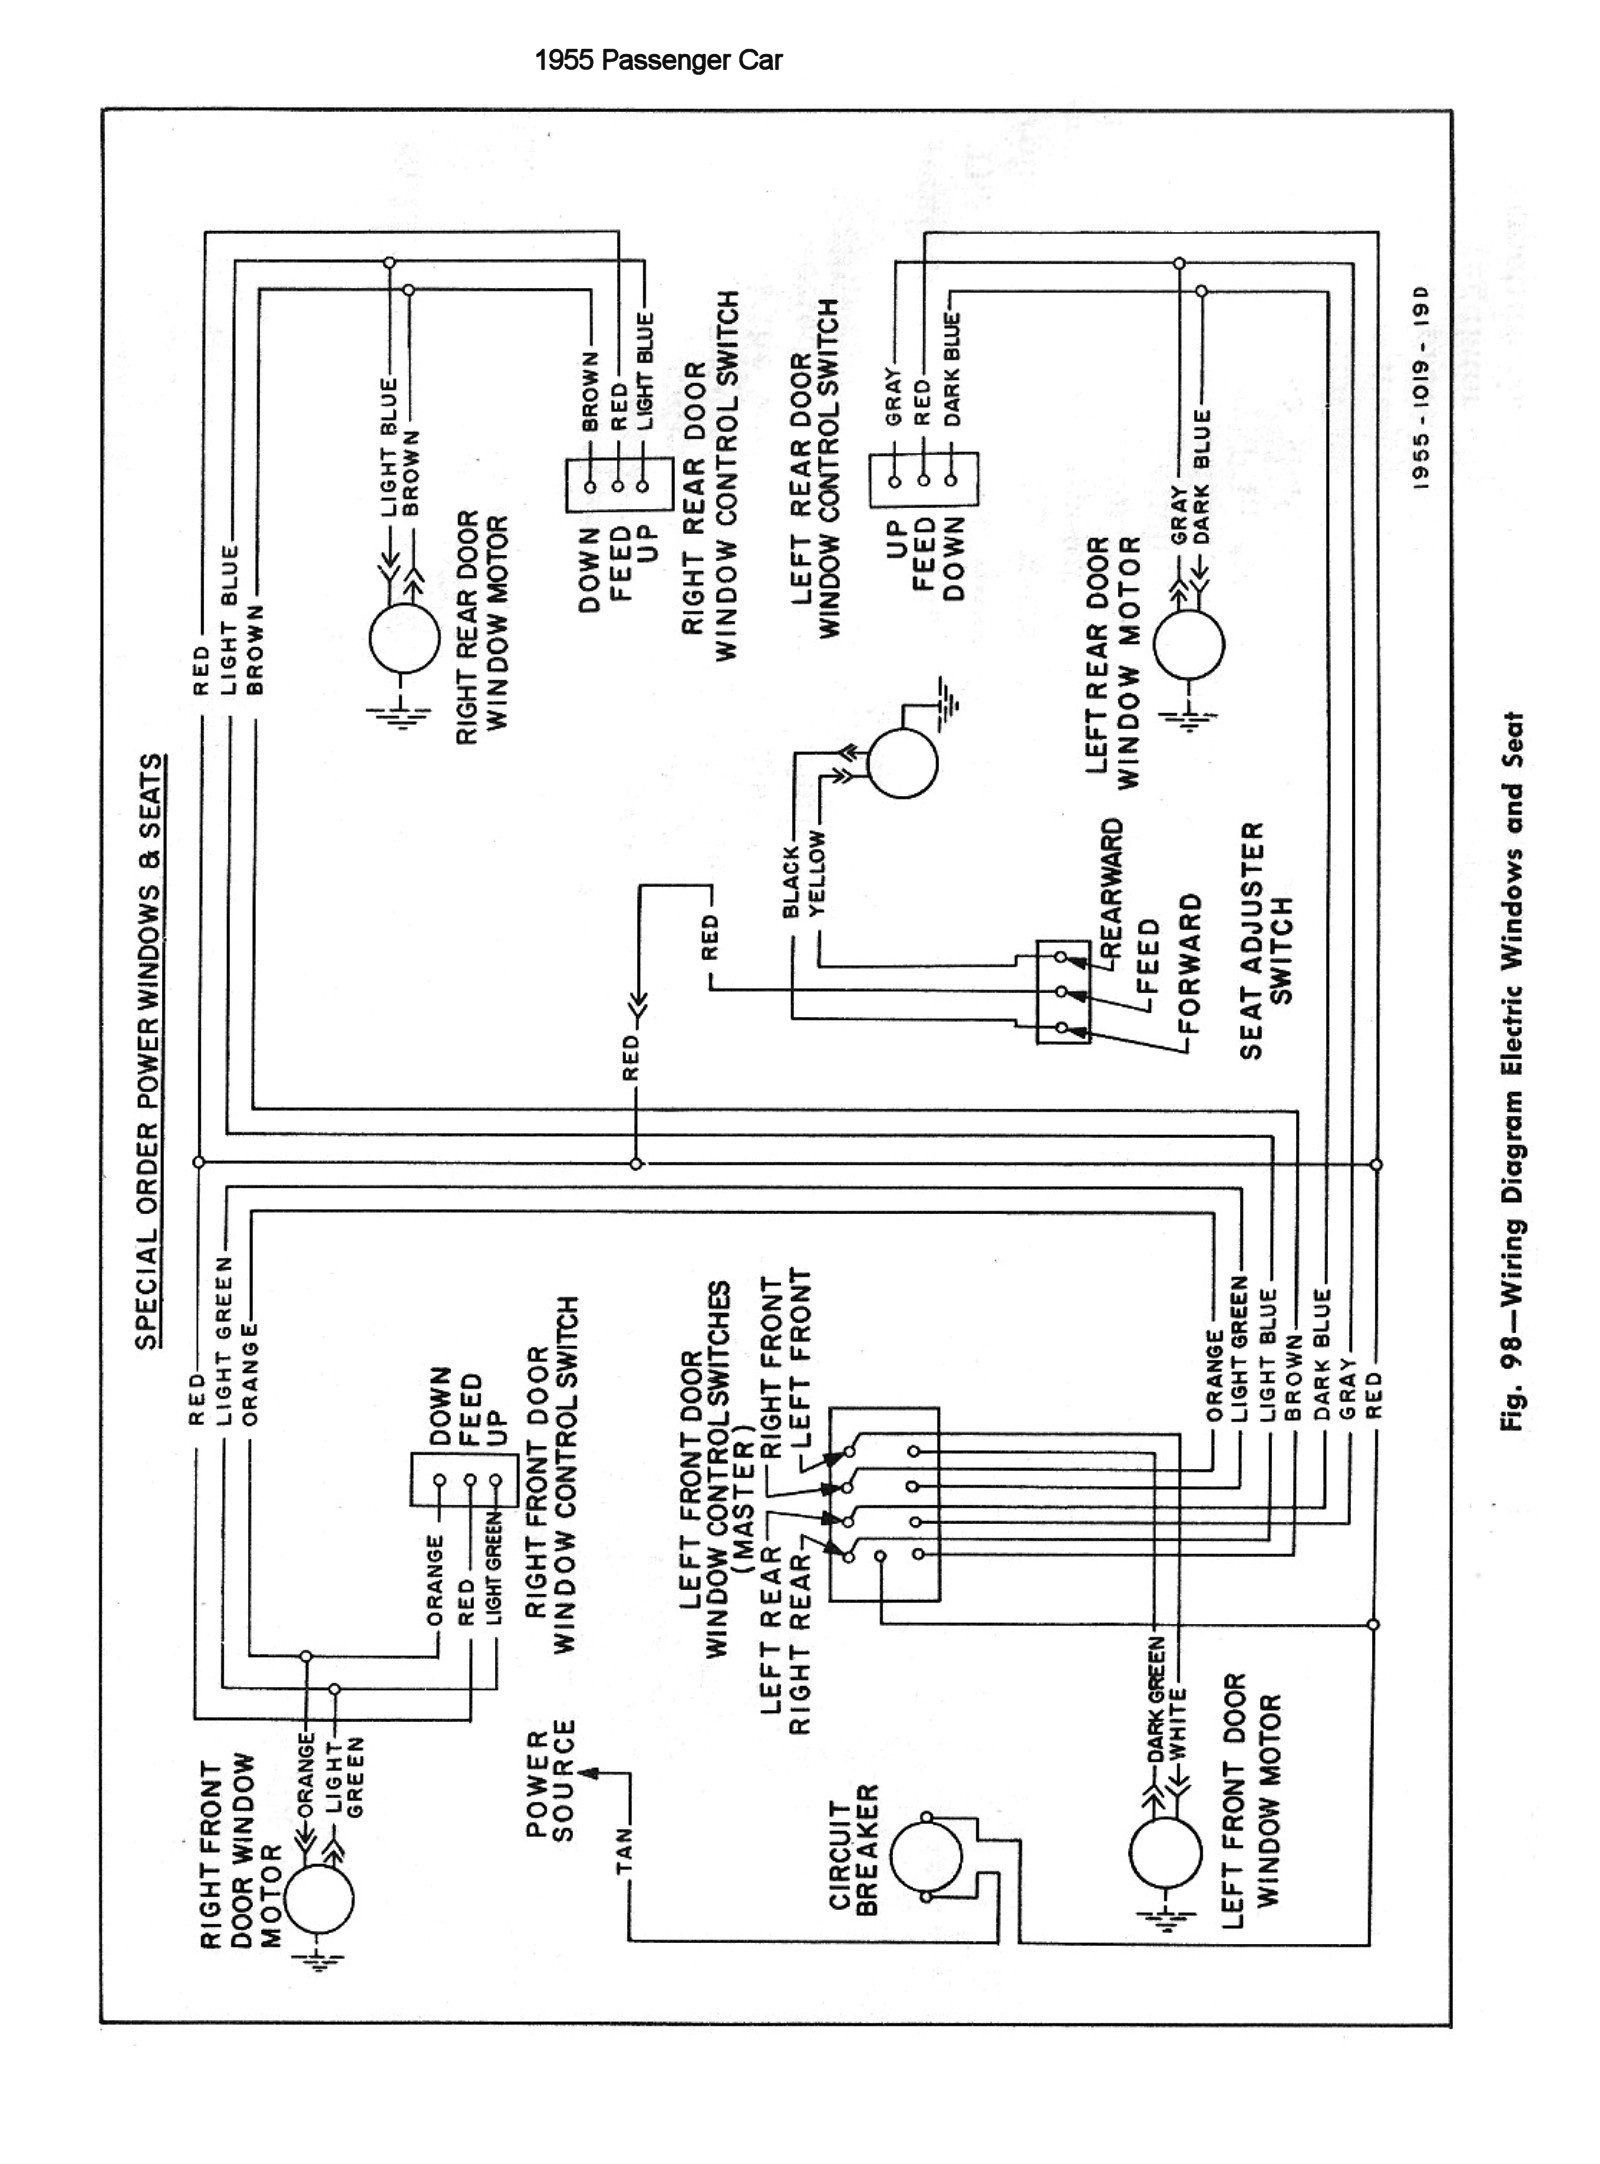 hight resolution of 1955 chevy turn signal wiring diagram wiringdiagram org rh pinterest com 57 chevy turn signal wiring